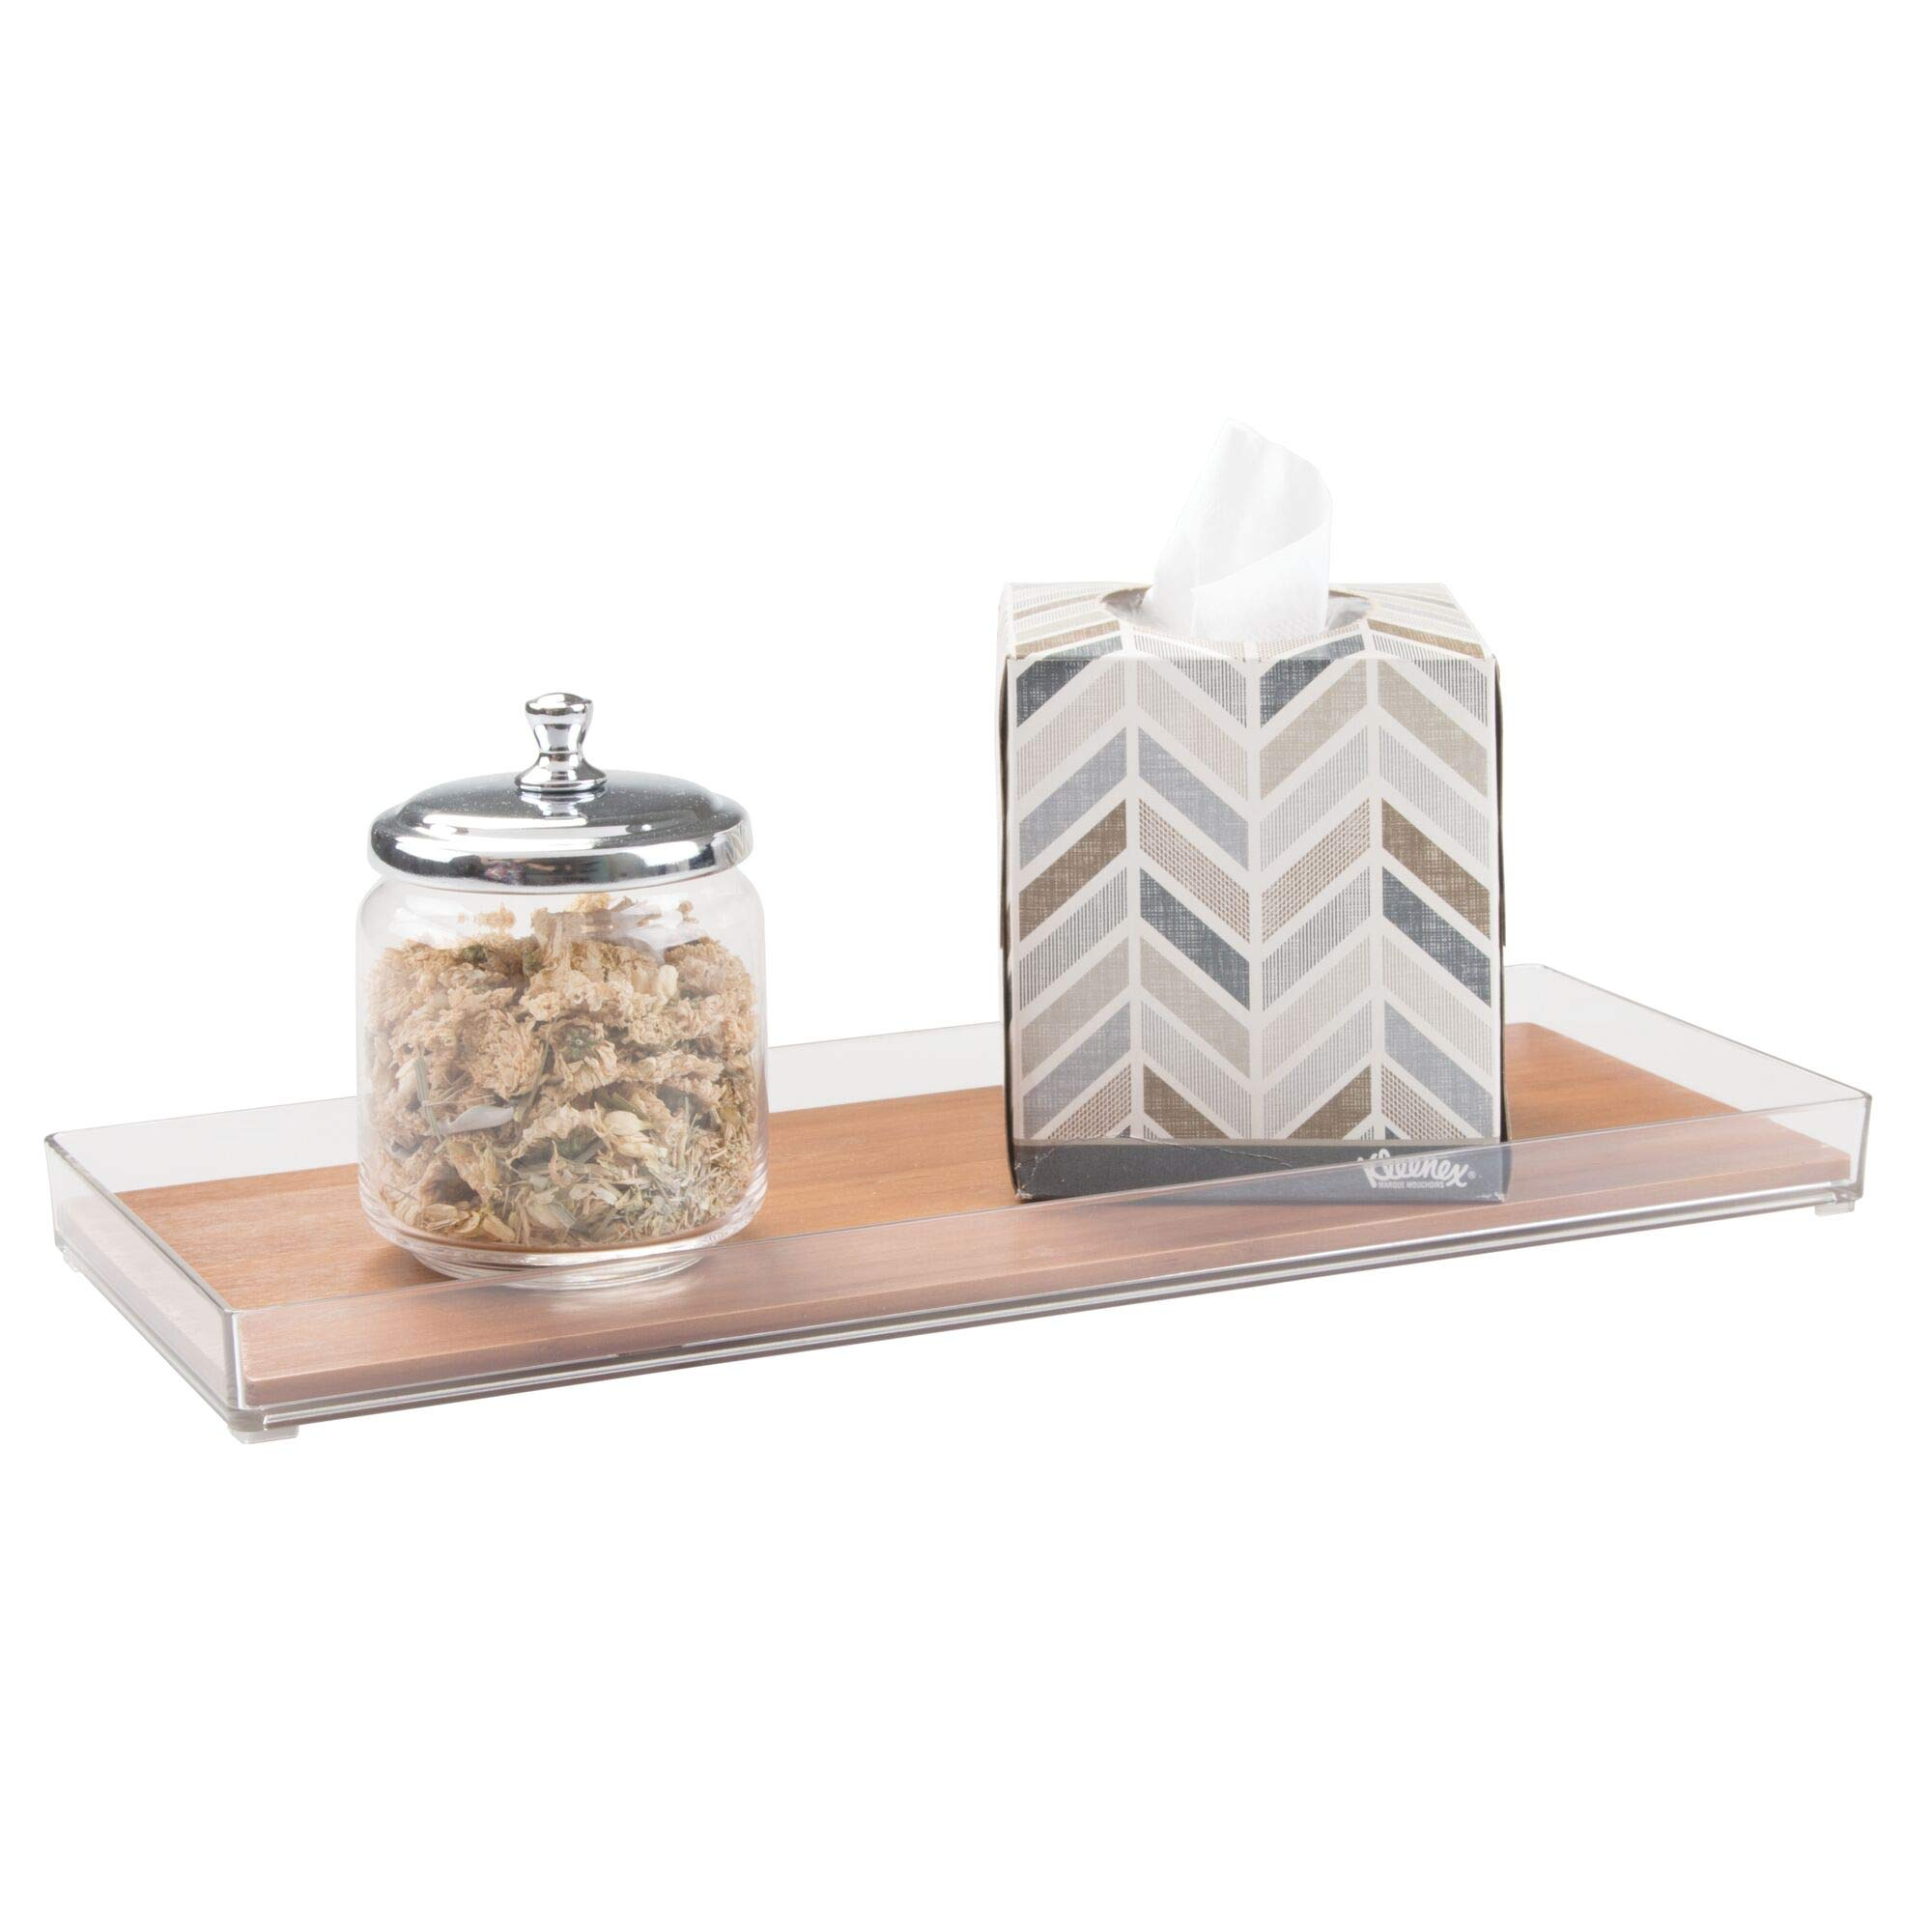 """iDesign Formbu Wooden Vanity Storage Organizer, Tank Tray for Makeup Brushes, Tissues, Candles, Soap, Hand Towels, Toilet Paper, 6"""" x 16"""" x 1.1"""" - Natural Beige"""